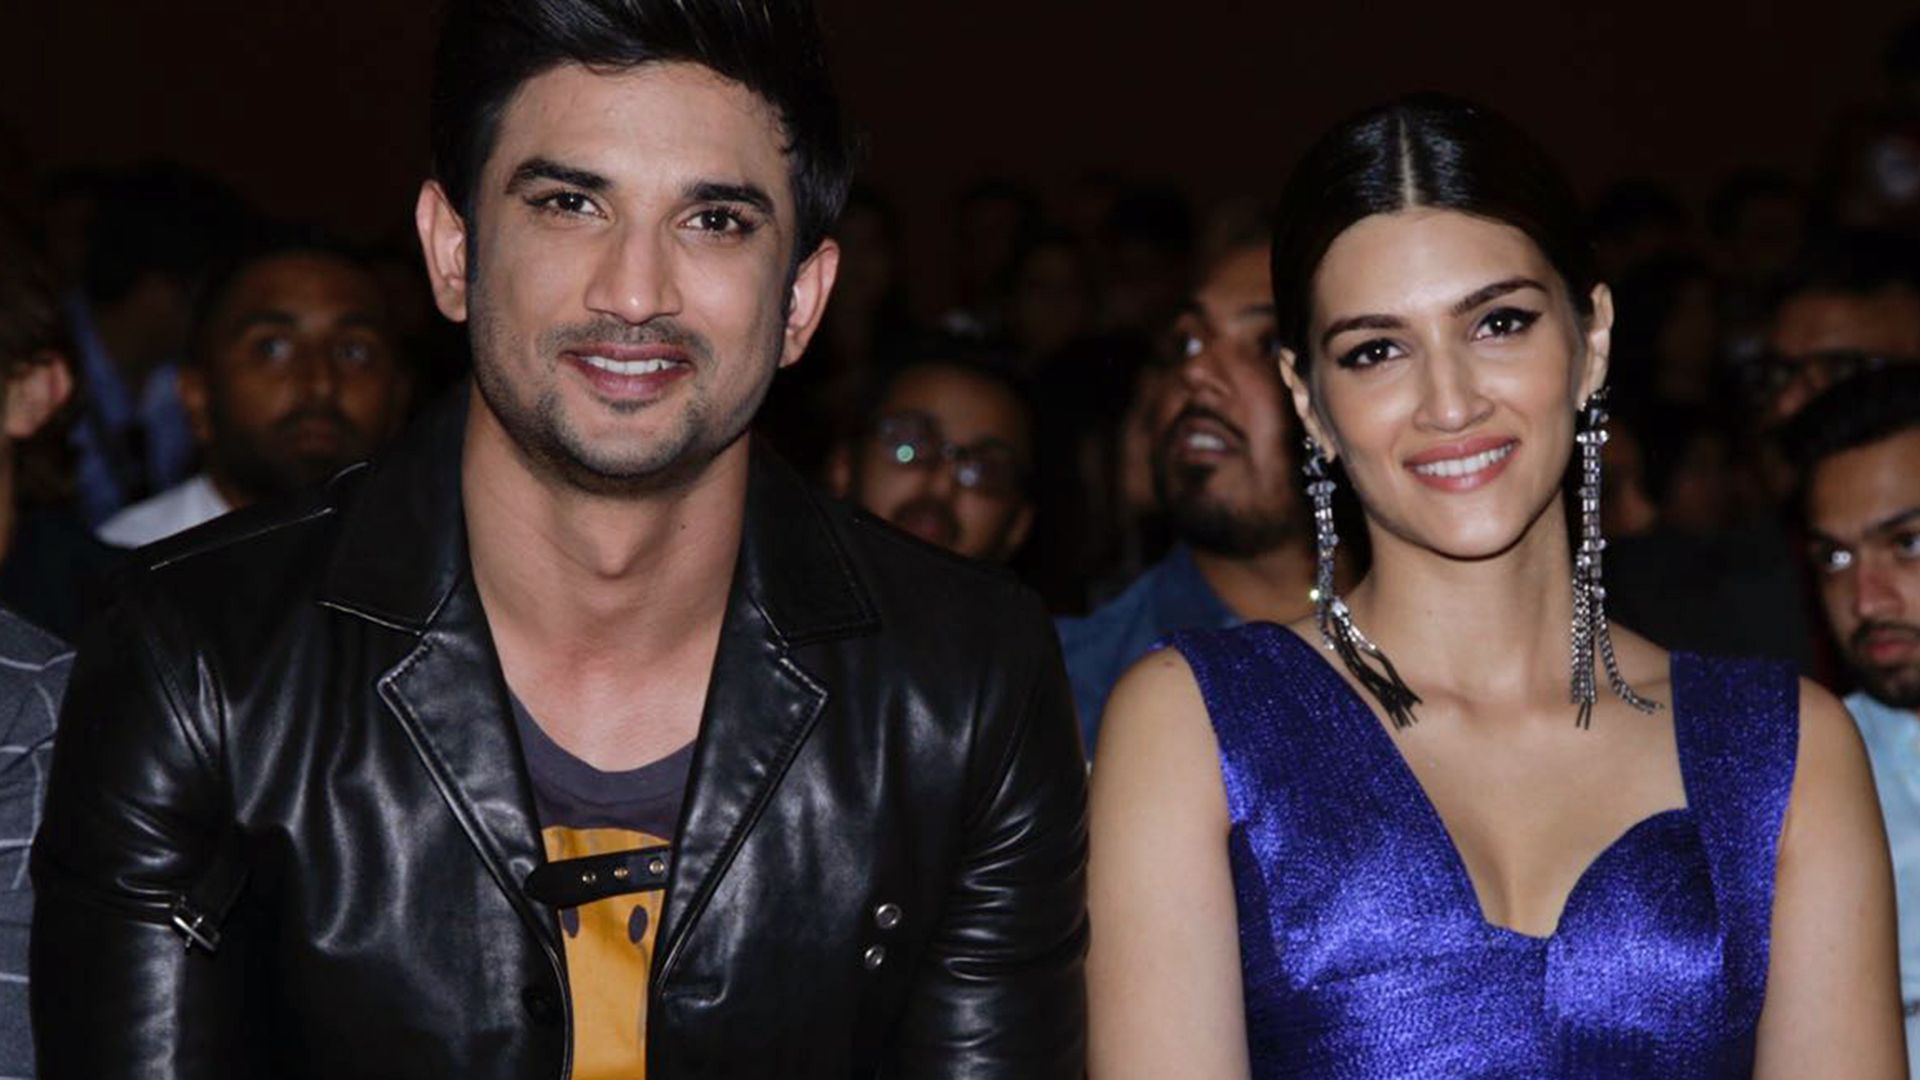 IIFA 2017 takes off with its first Bollywoodfilled event